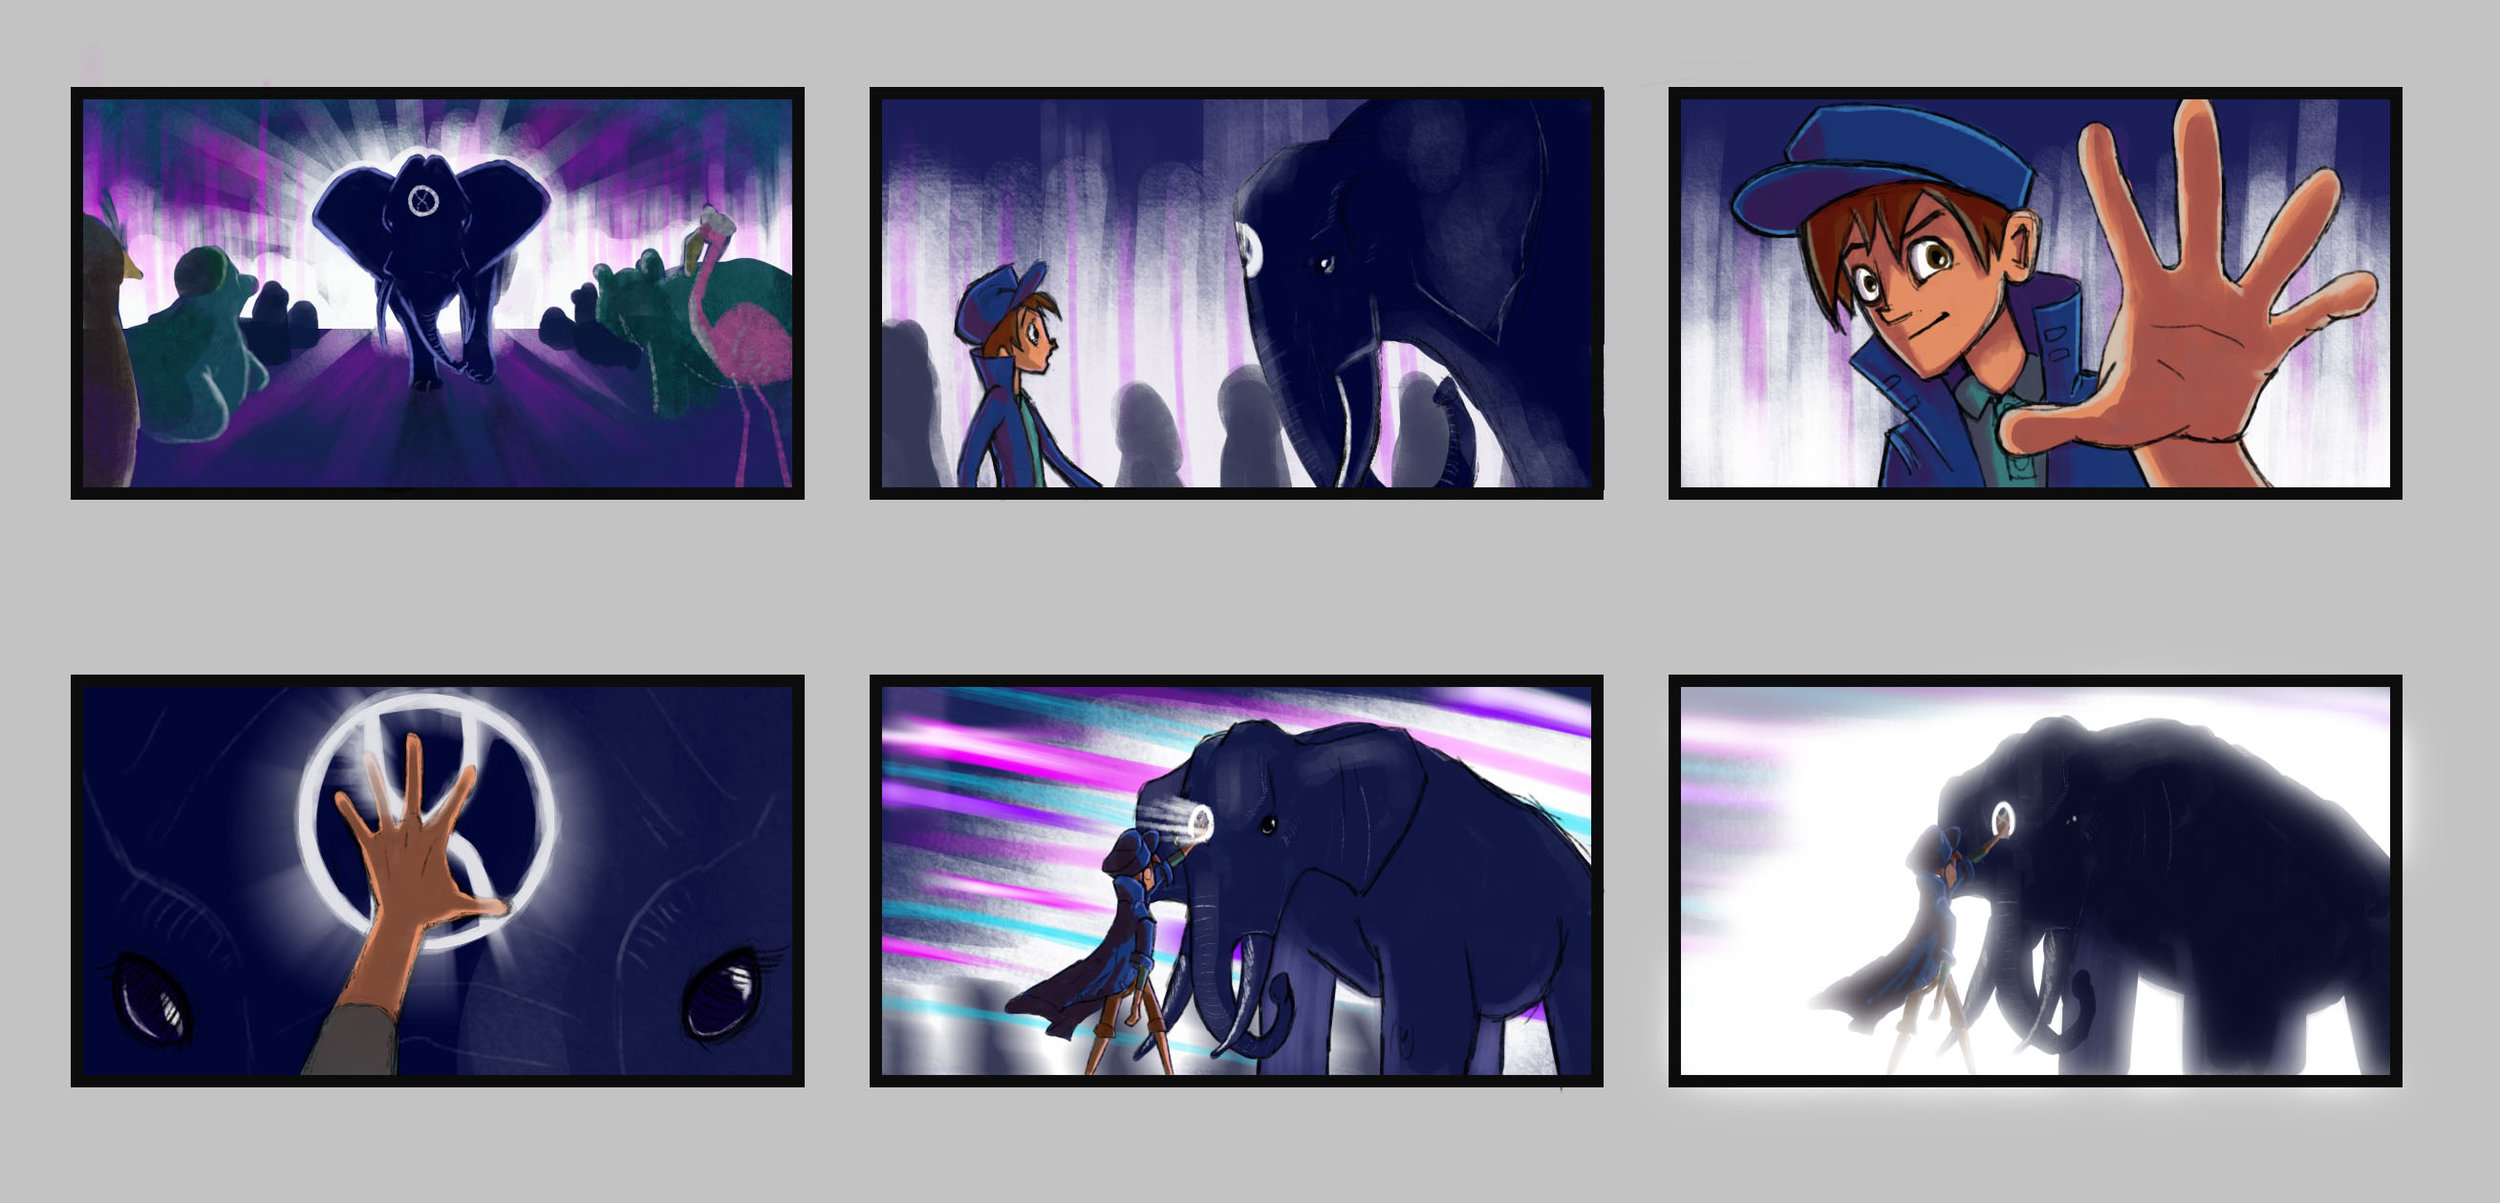 Sample storyboard concepts